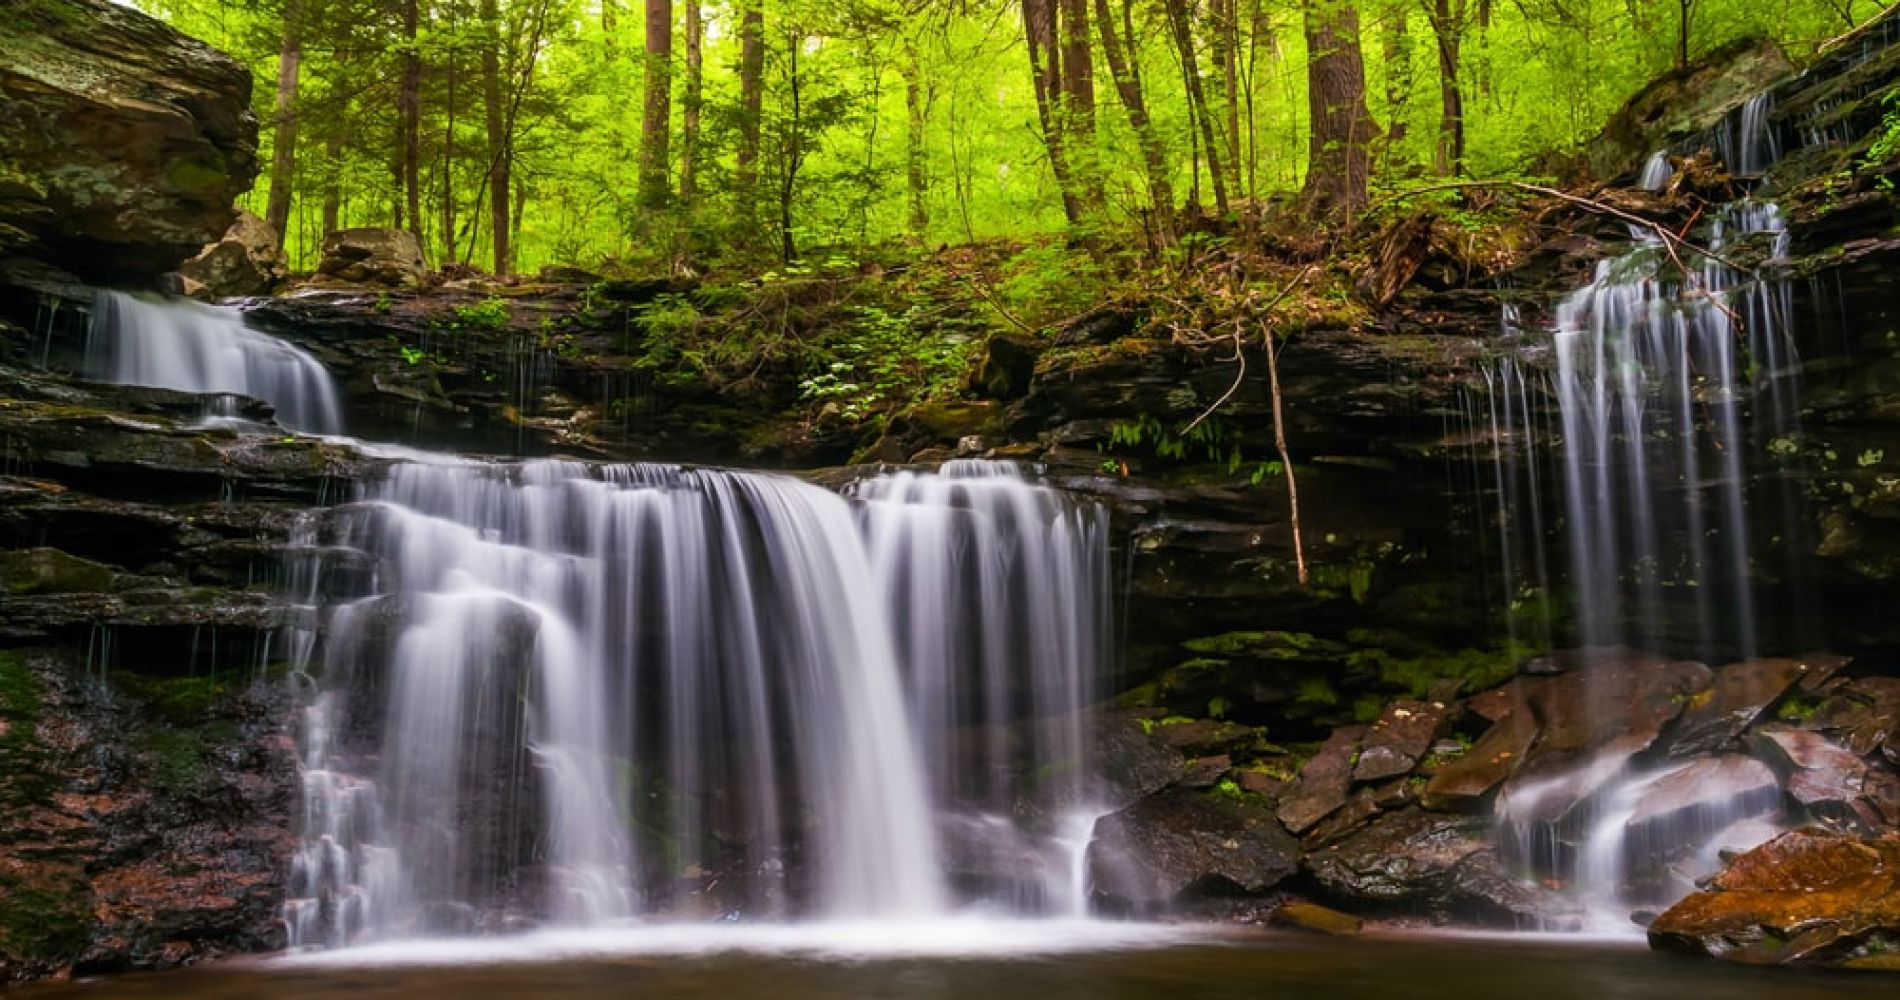 Visit Ricketts Glen State Park while in Pennsylvania